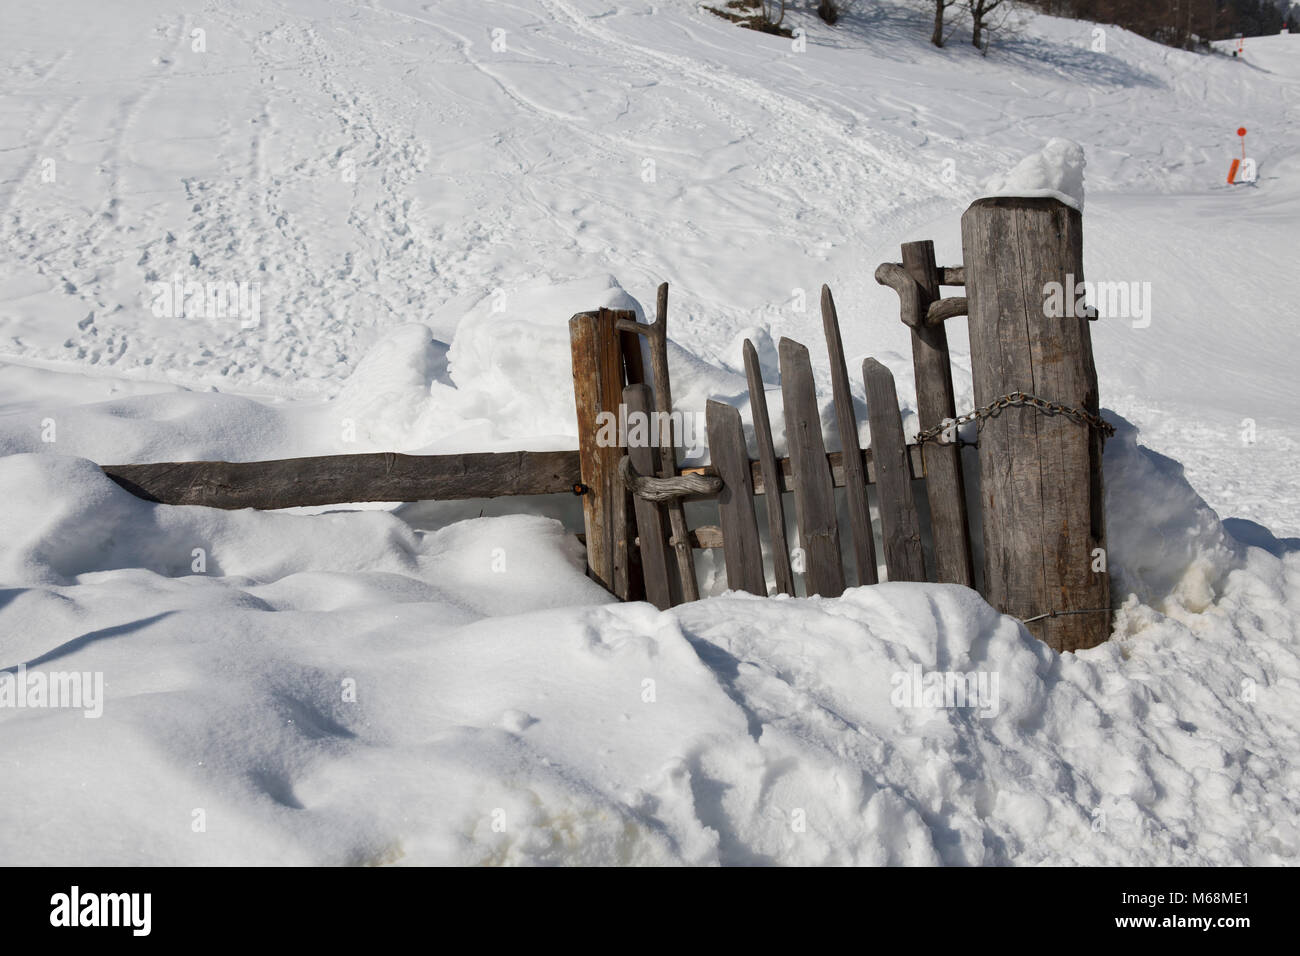 Europe Austria Alps Großarl - an old damaged wooden fence in the snow - Stock Image